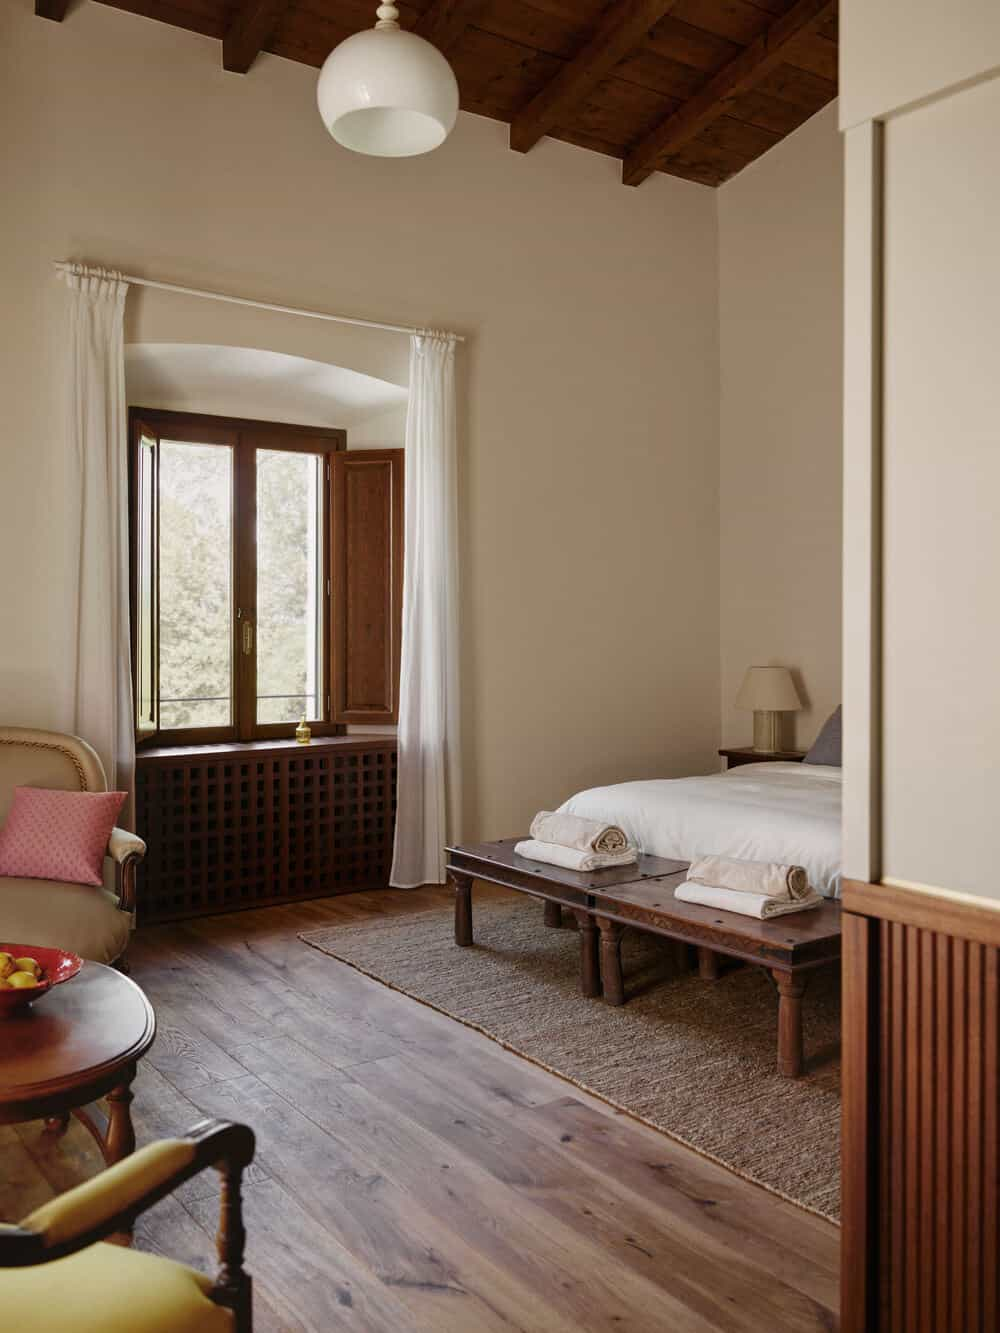 This view of the bedroom showcases the wooden bench at the foot of the bed and the window with a build-in bench on the far side.